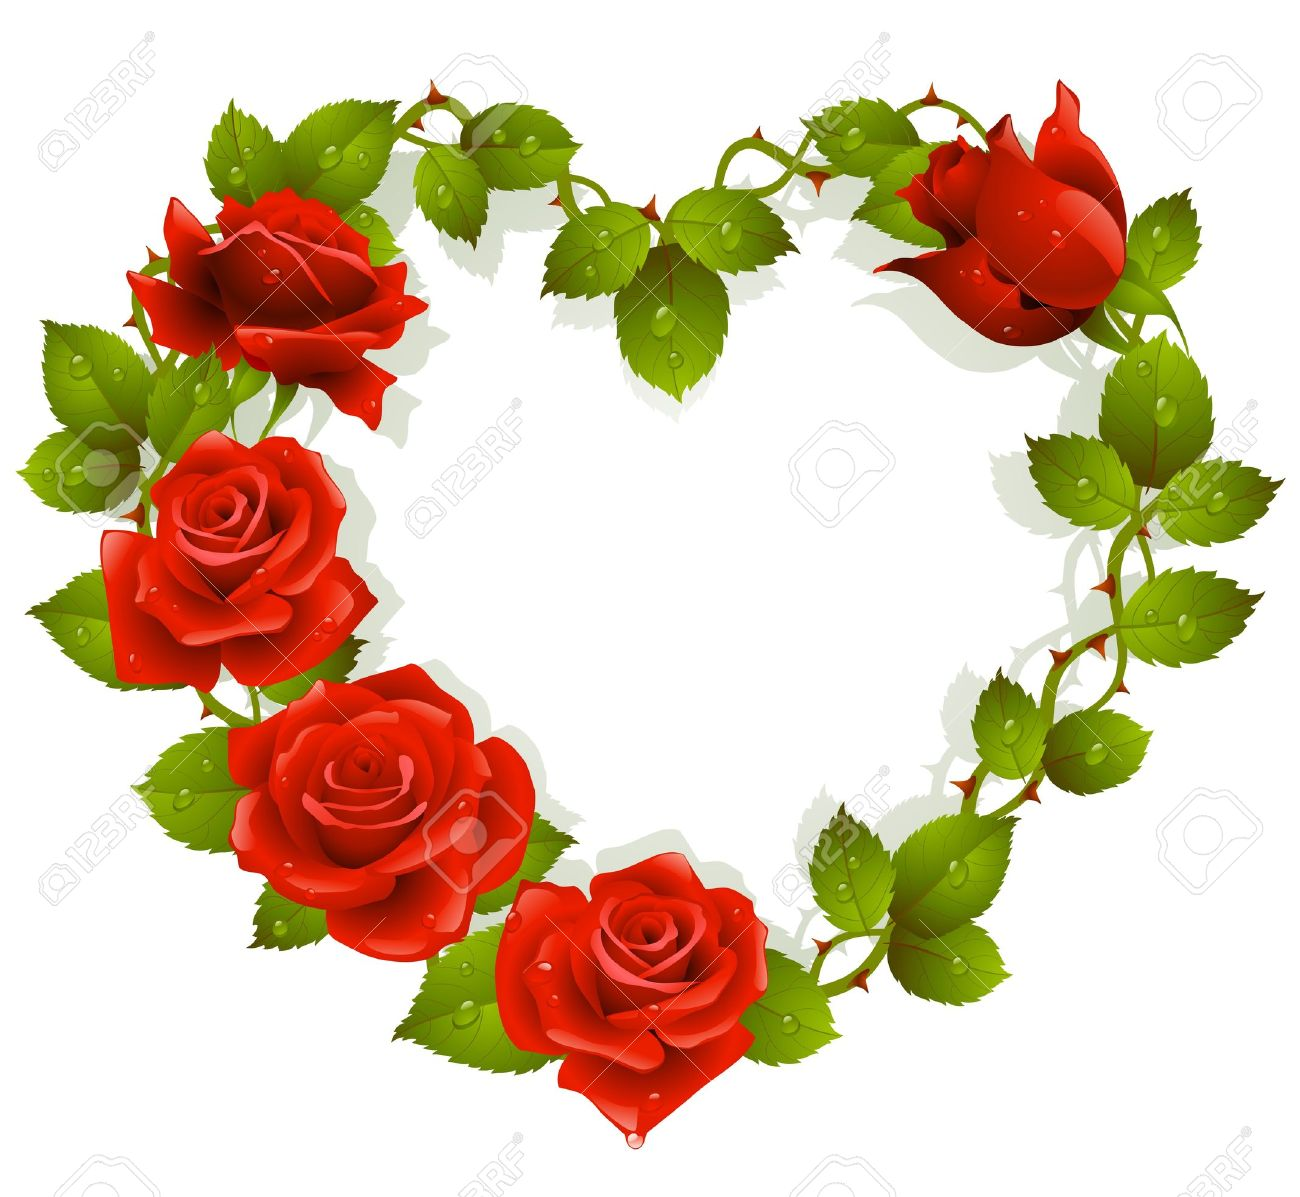 Framework From Red Roses In The Shape Of Heart Royalty Free Cliparts ...